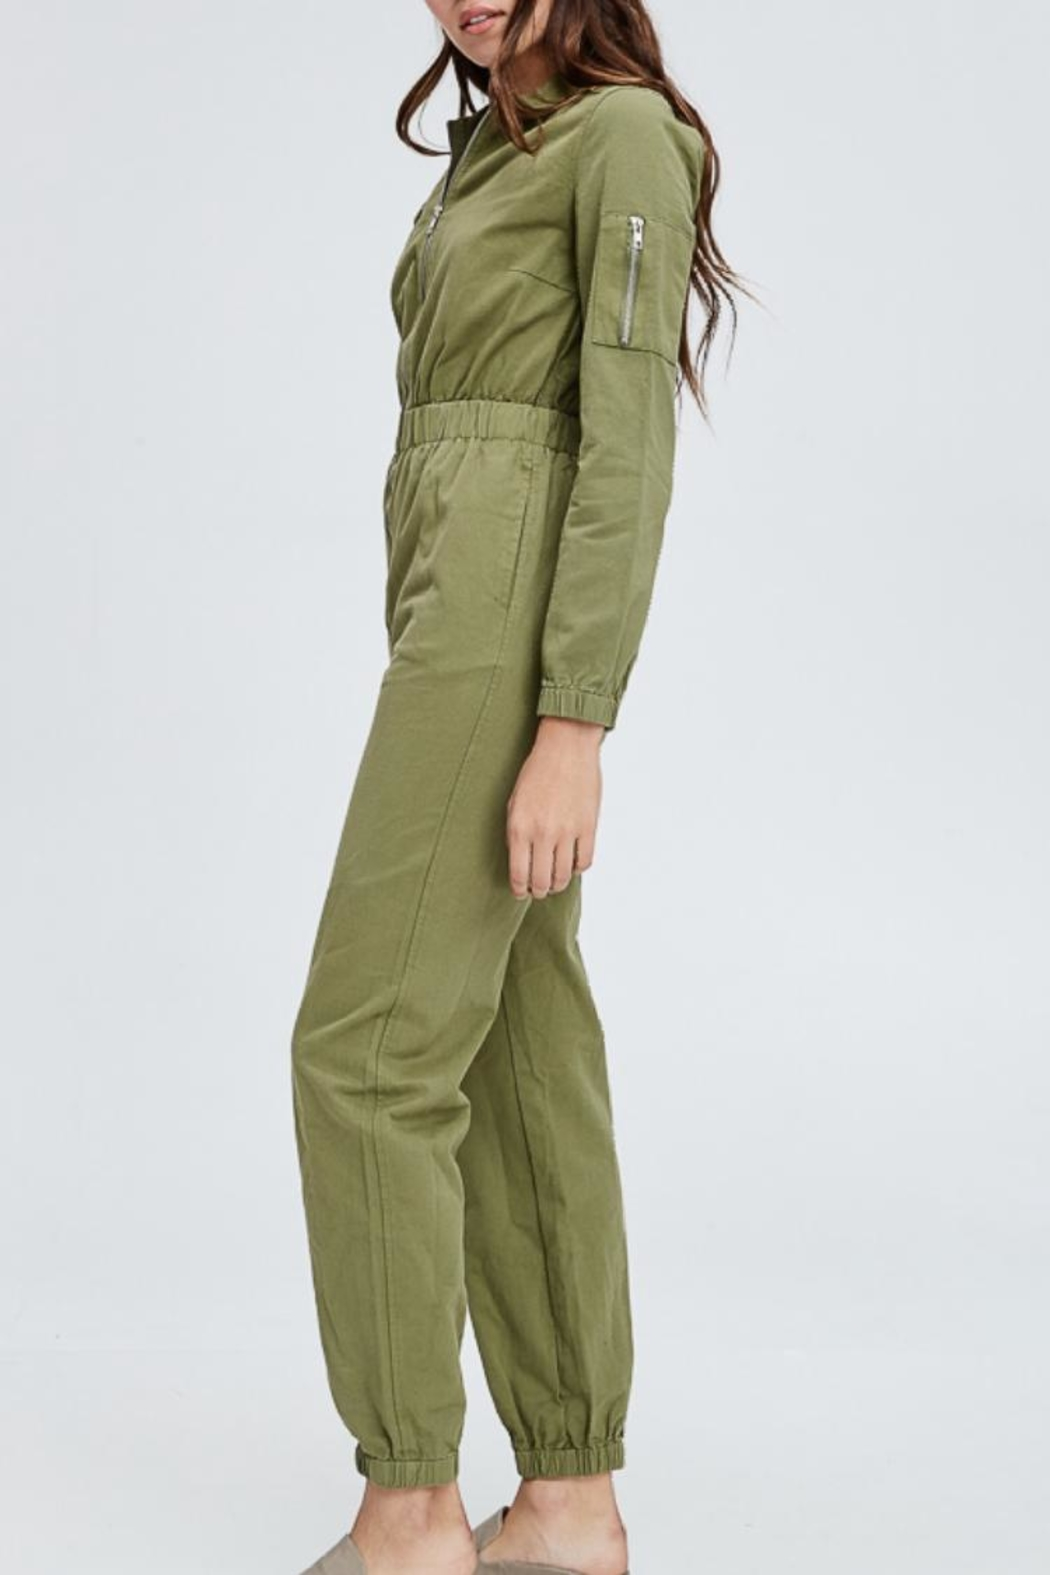 Emory Park Olive Overall Jumpsuit - Front Full Image